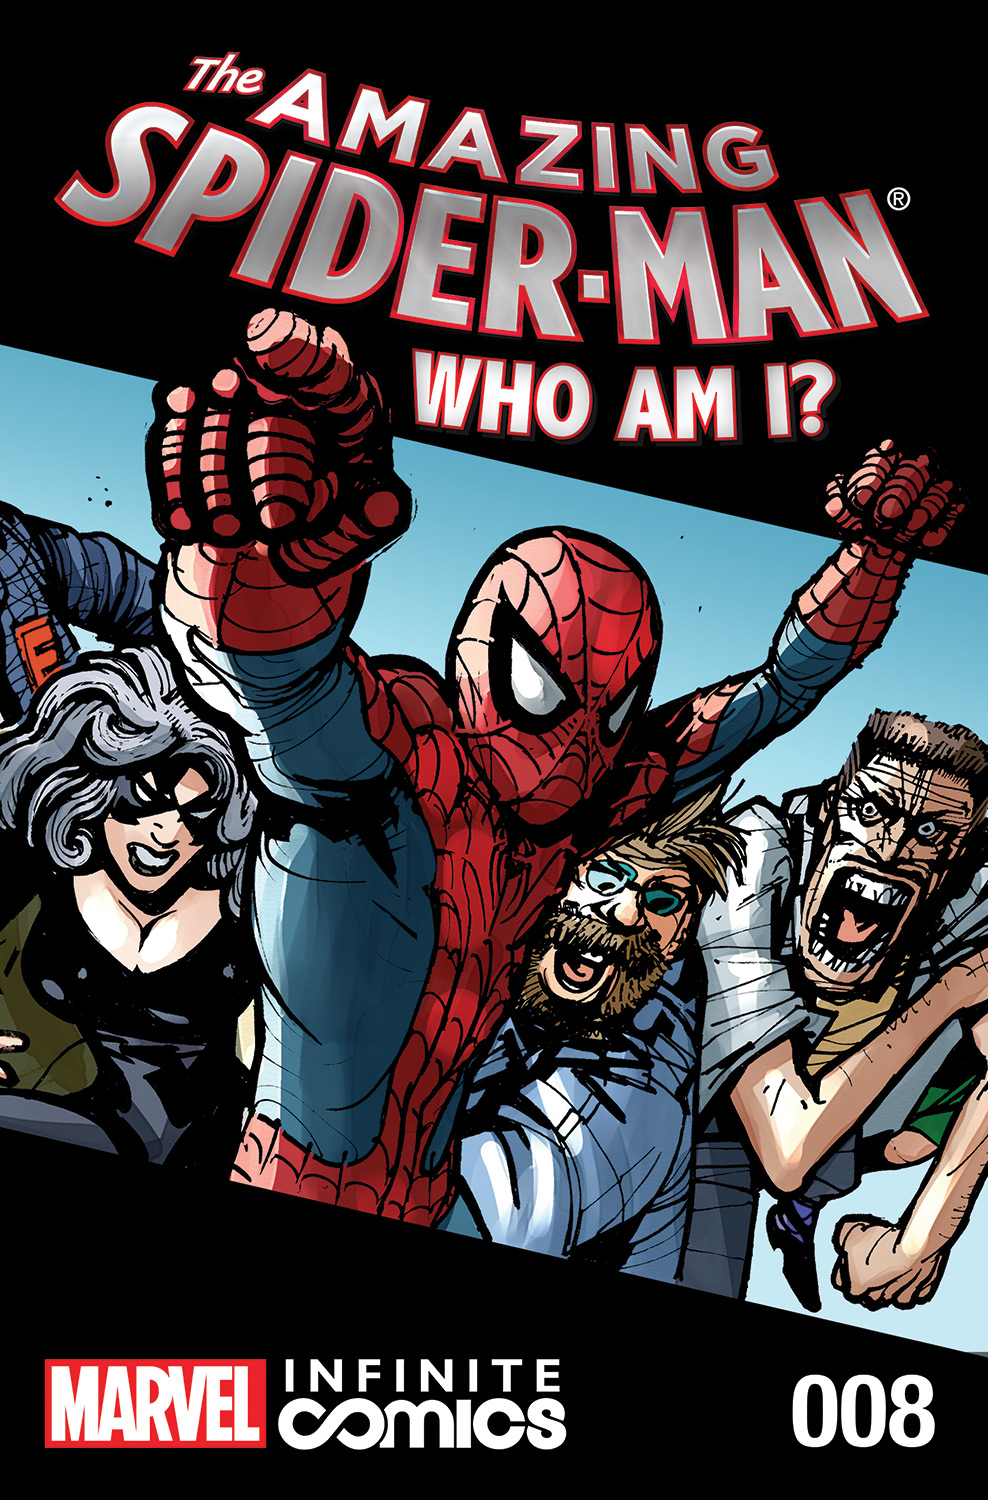 Amazing Spider-Man: Who Am I? Infinite Digital Comic (2014) #8